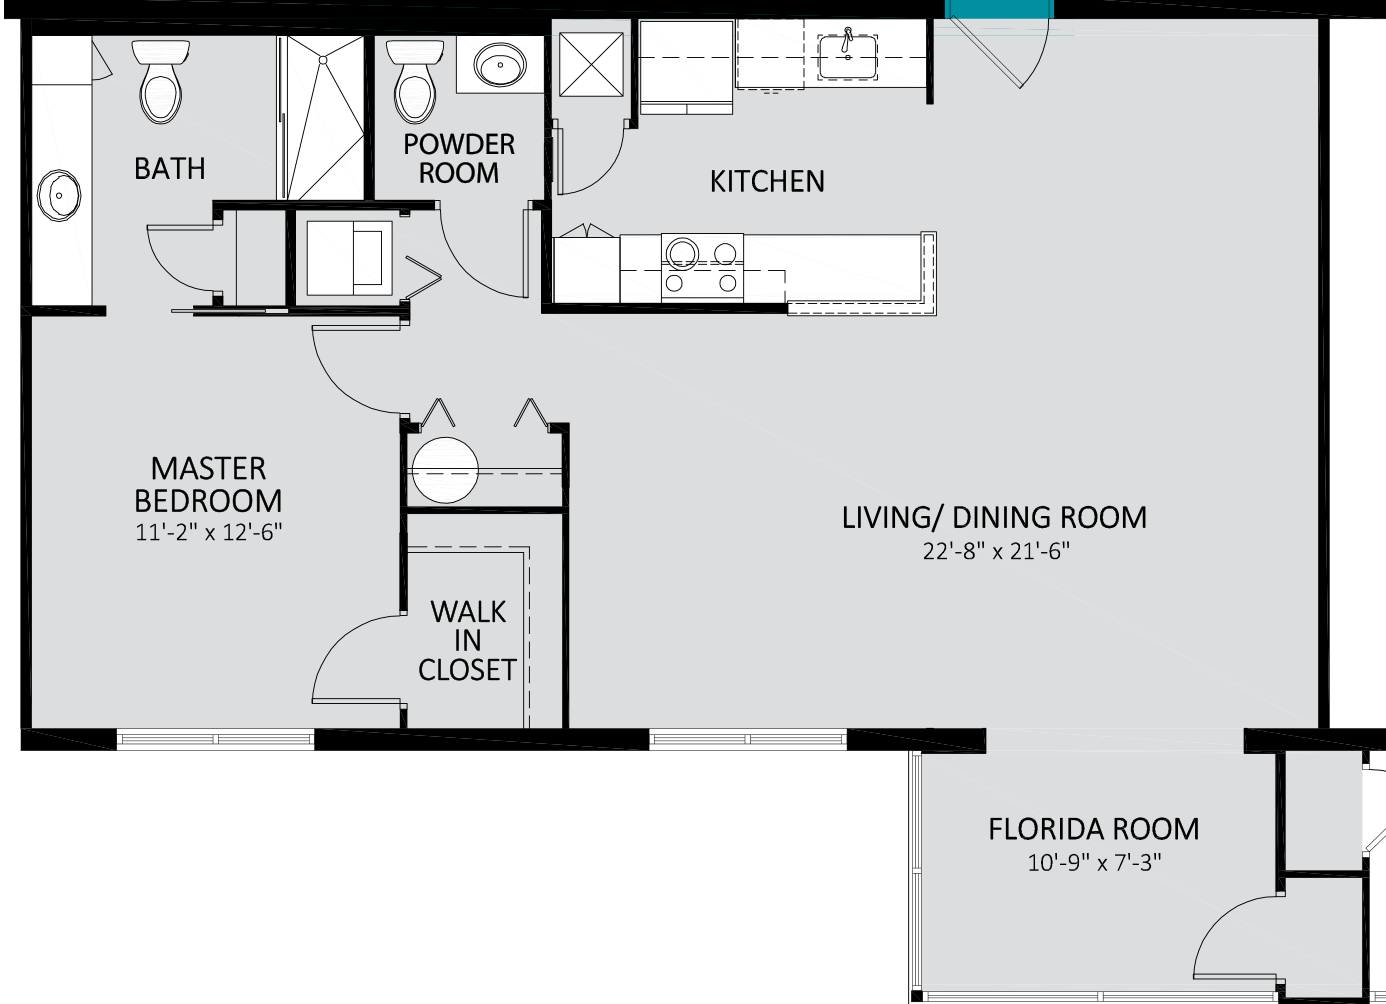 SAE Ocean Breeze ABCDE Contemporary One Bedroom-Great Room 923 Sq Ft.png